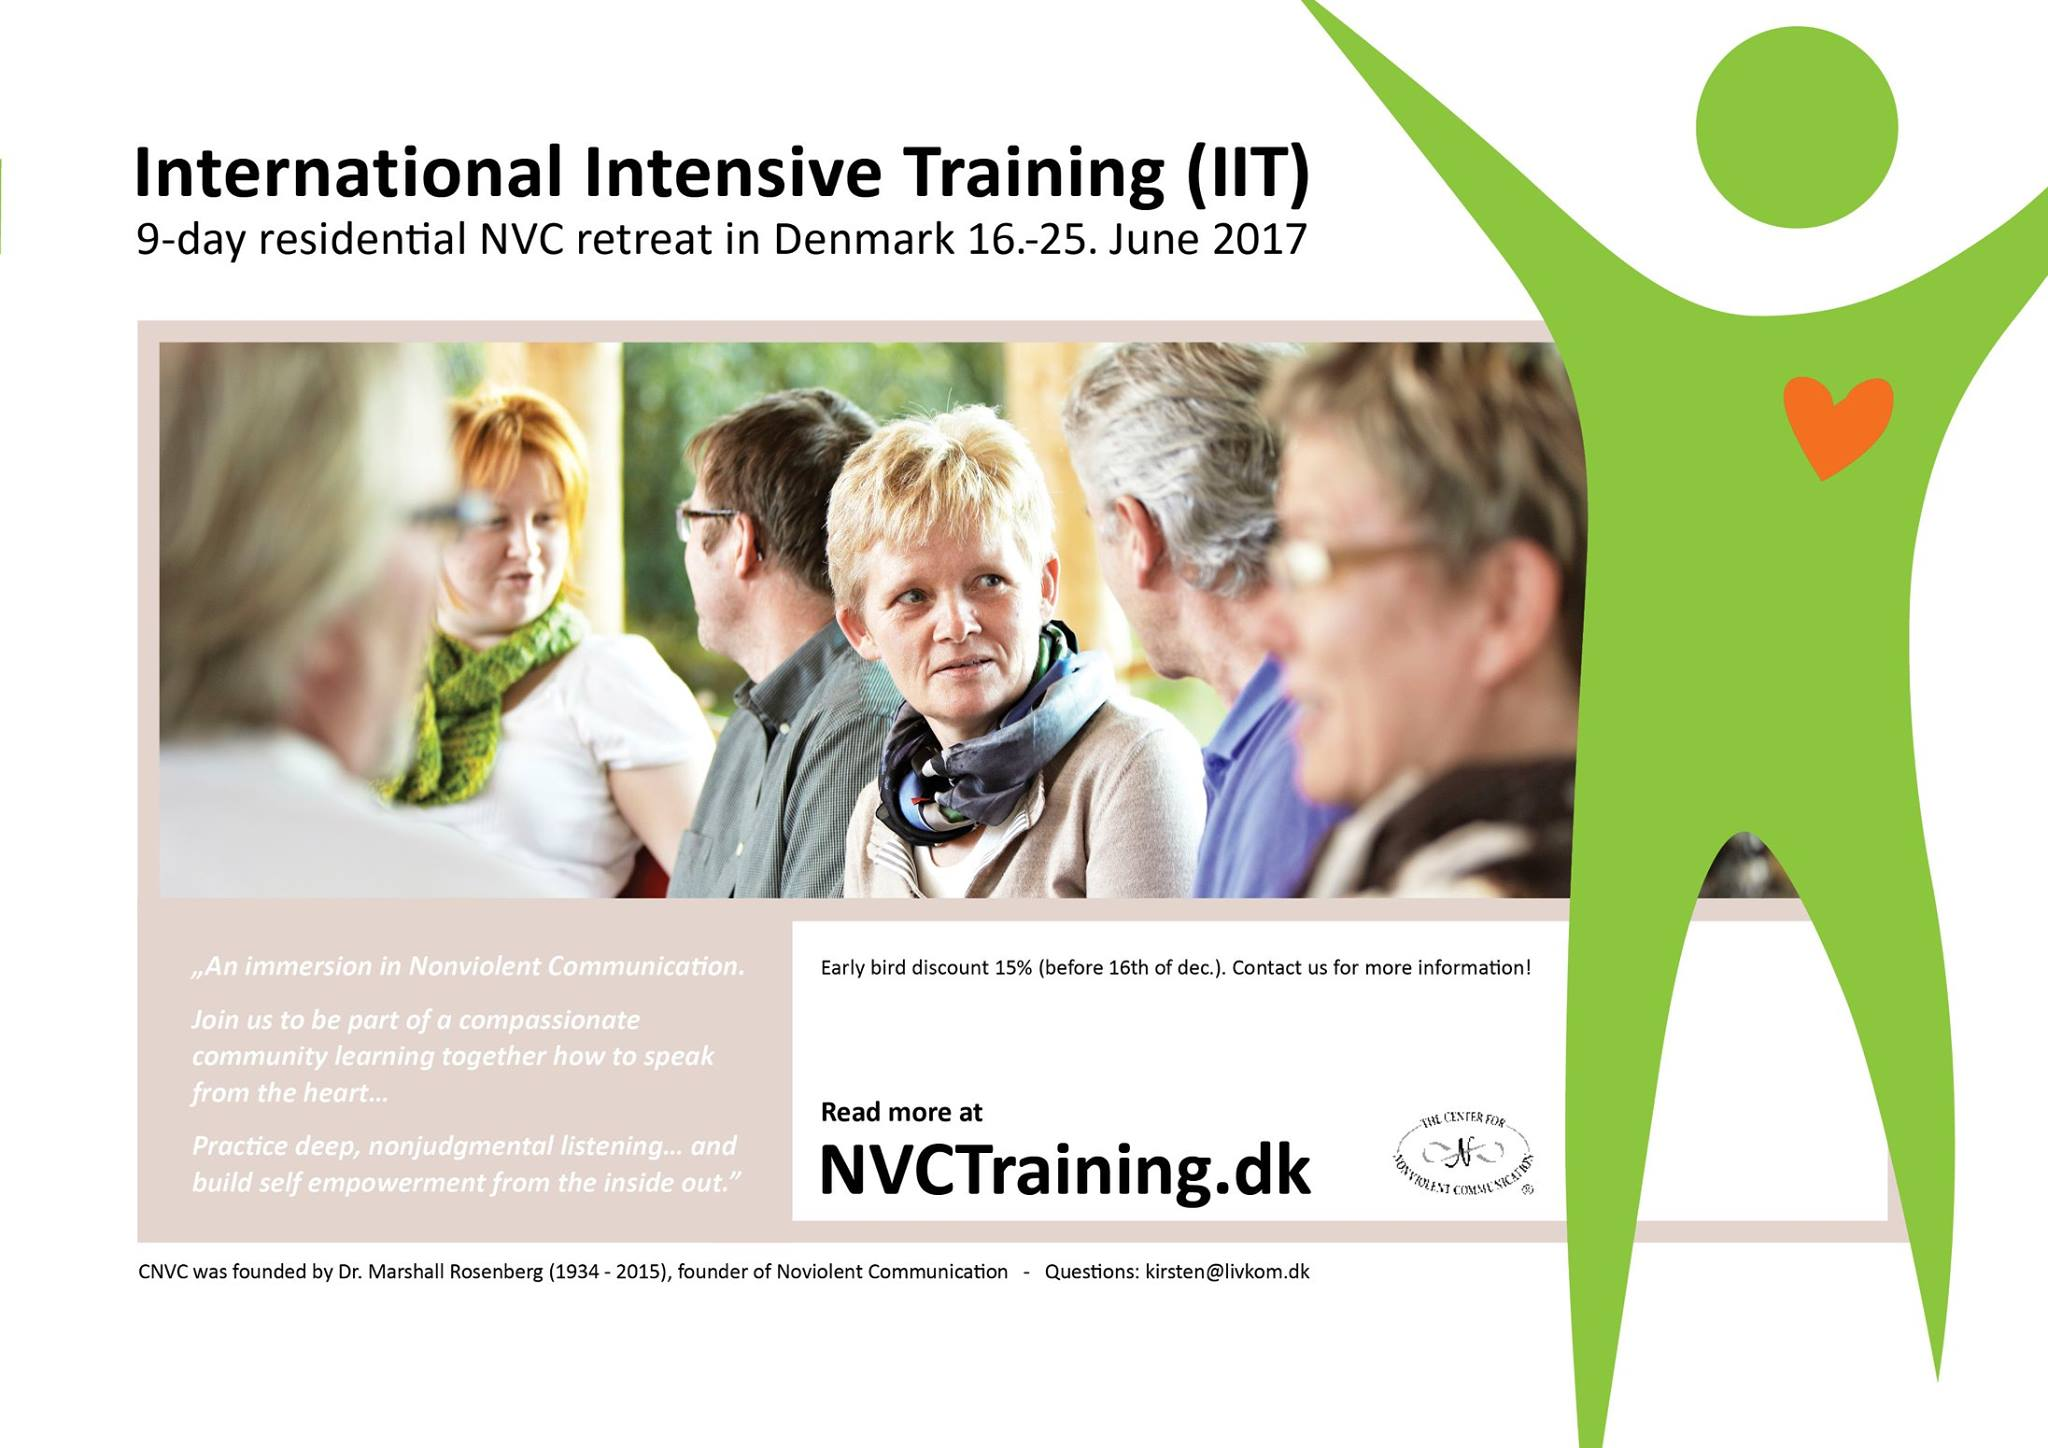 IIT - International Intensive Training in Denmark